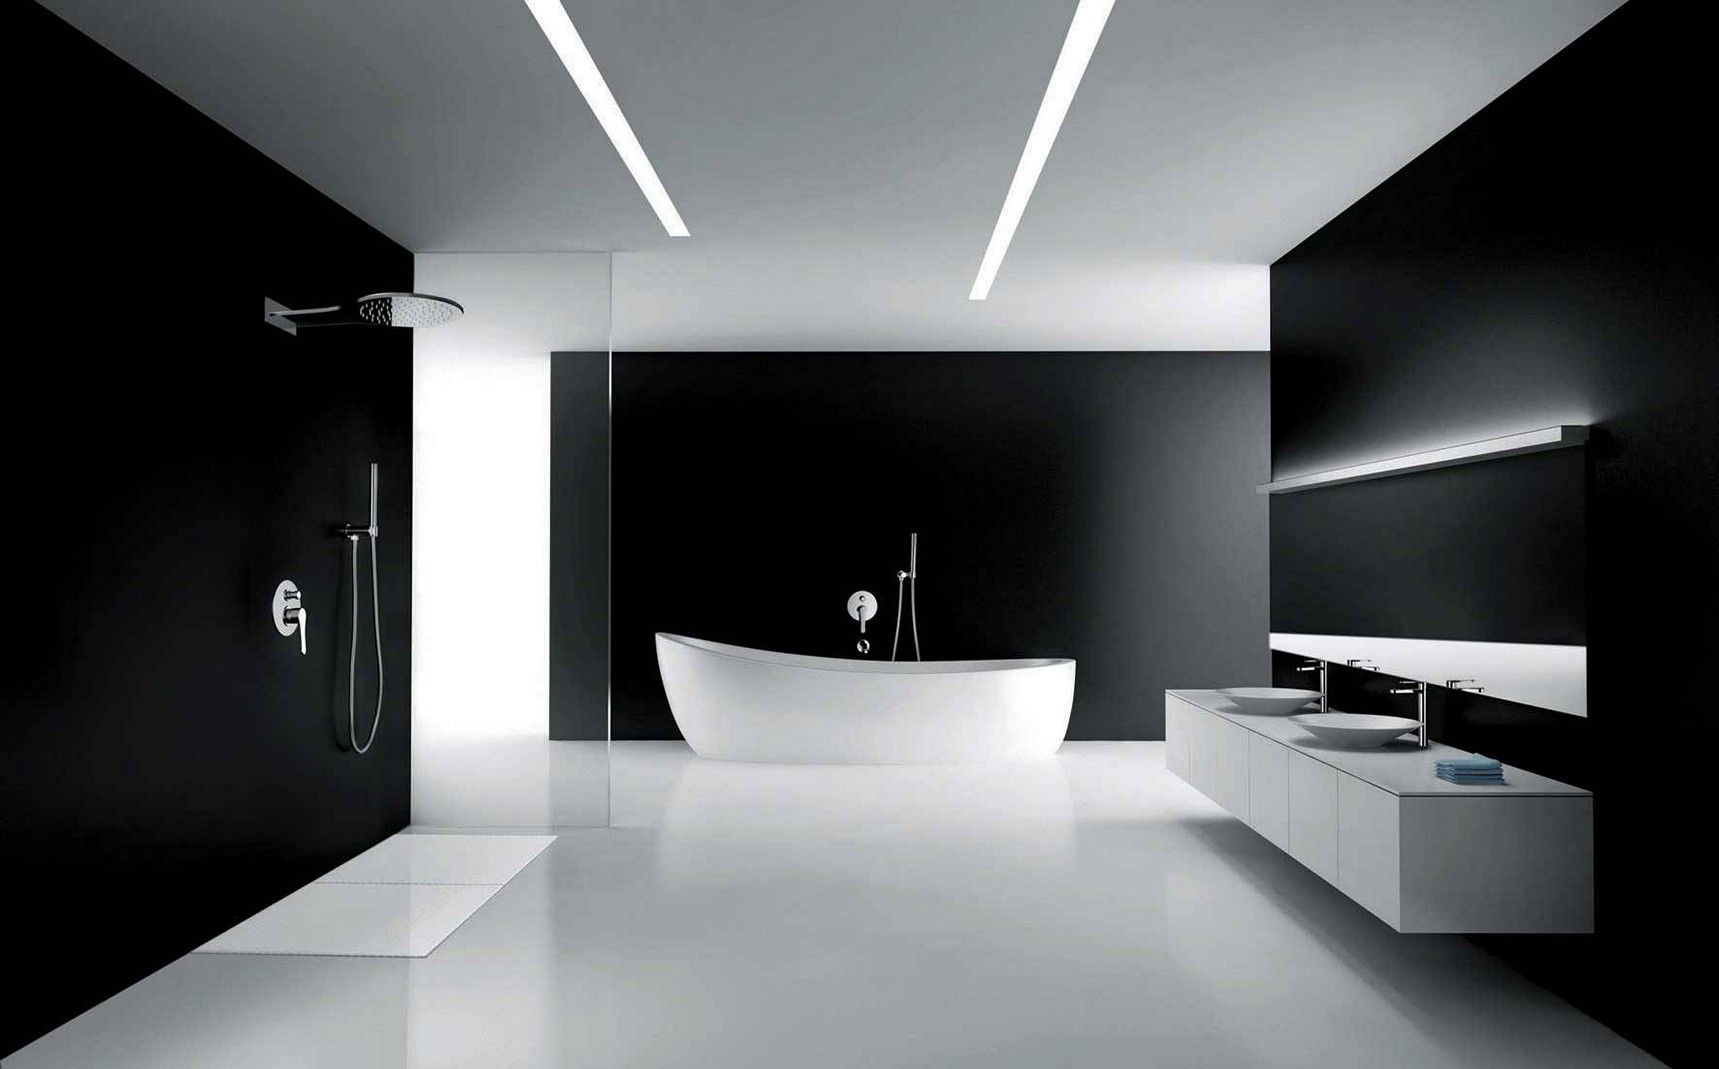 Black And White Bathroom Wall Color Ideas black nickel plated makes a statementitself and gives character